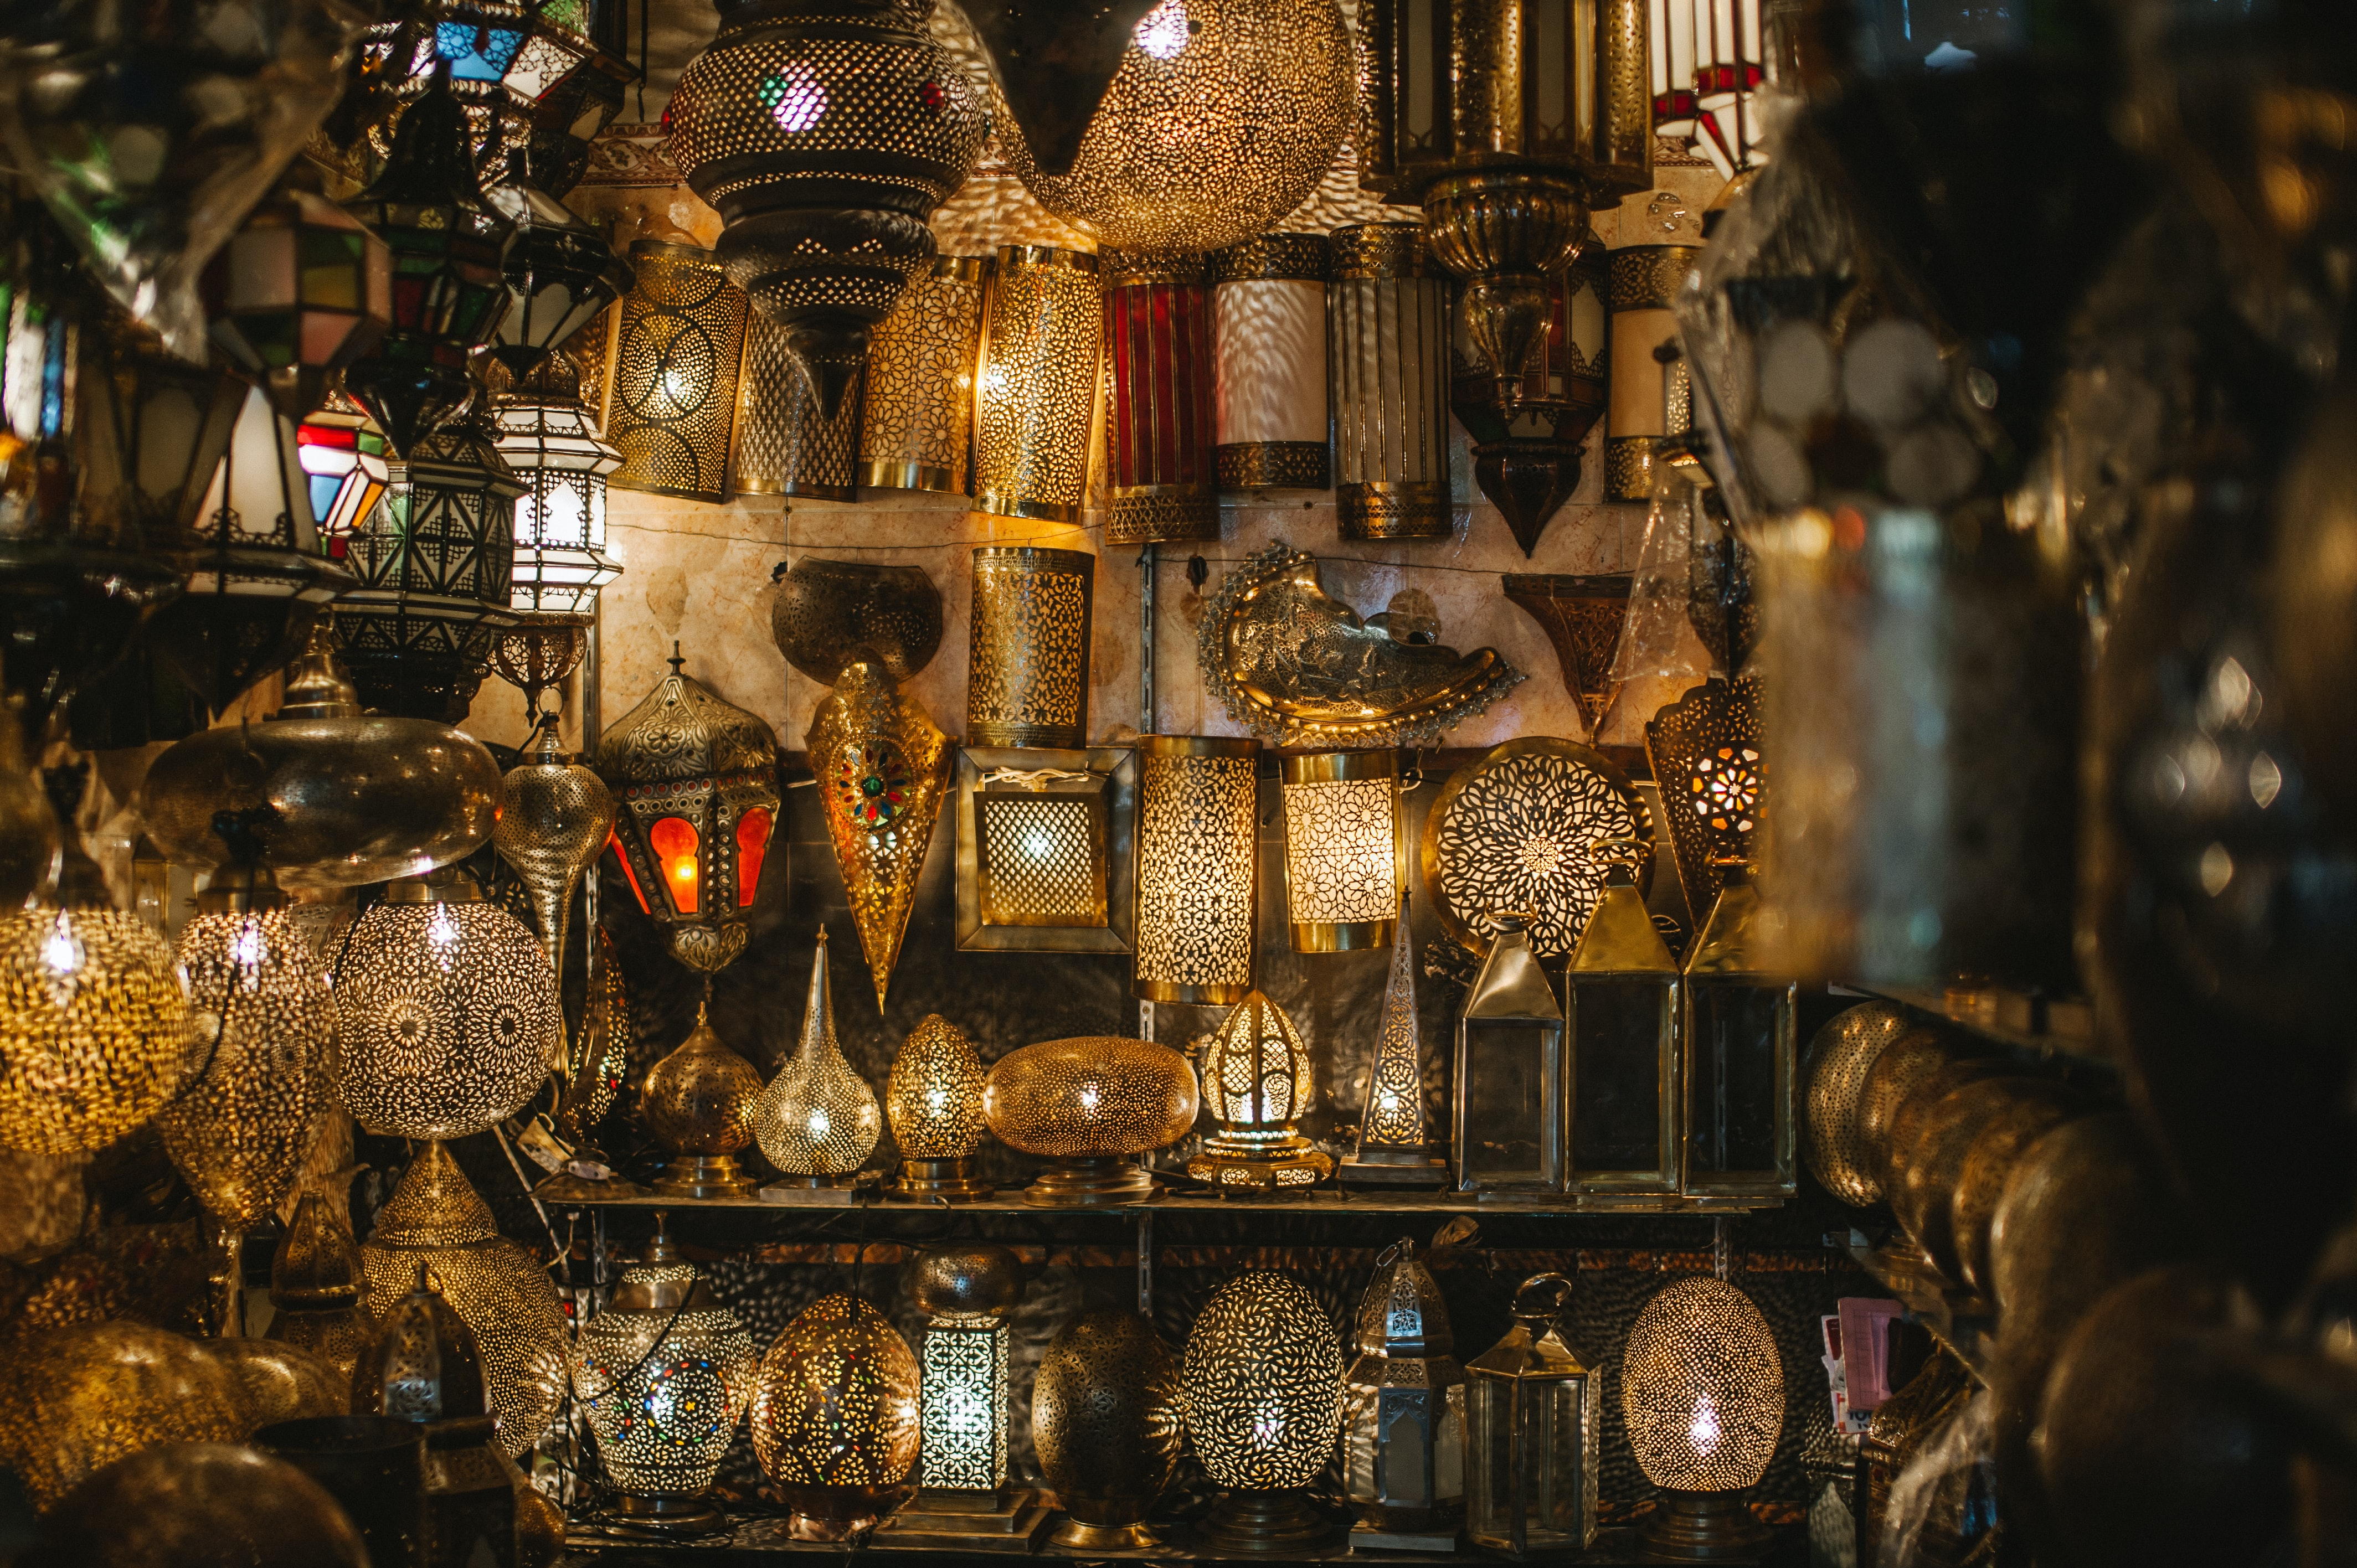 Lanterns at a stand in the souk in Marrakech